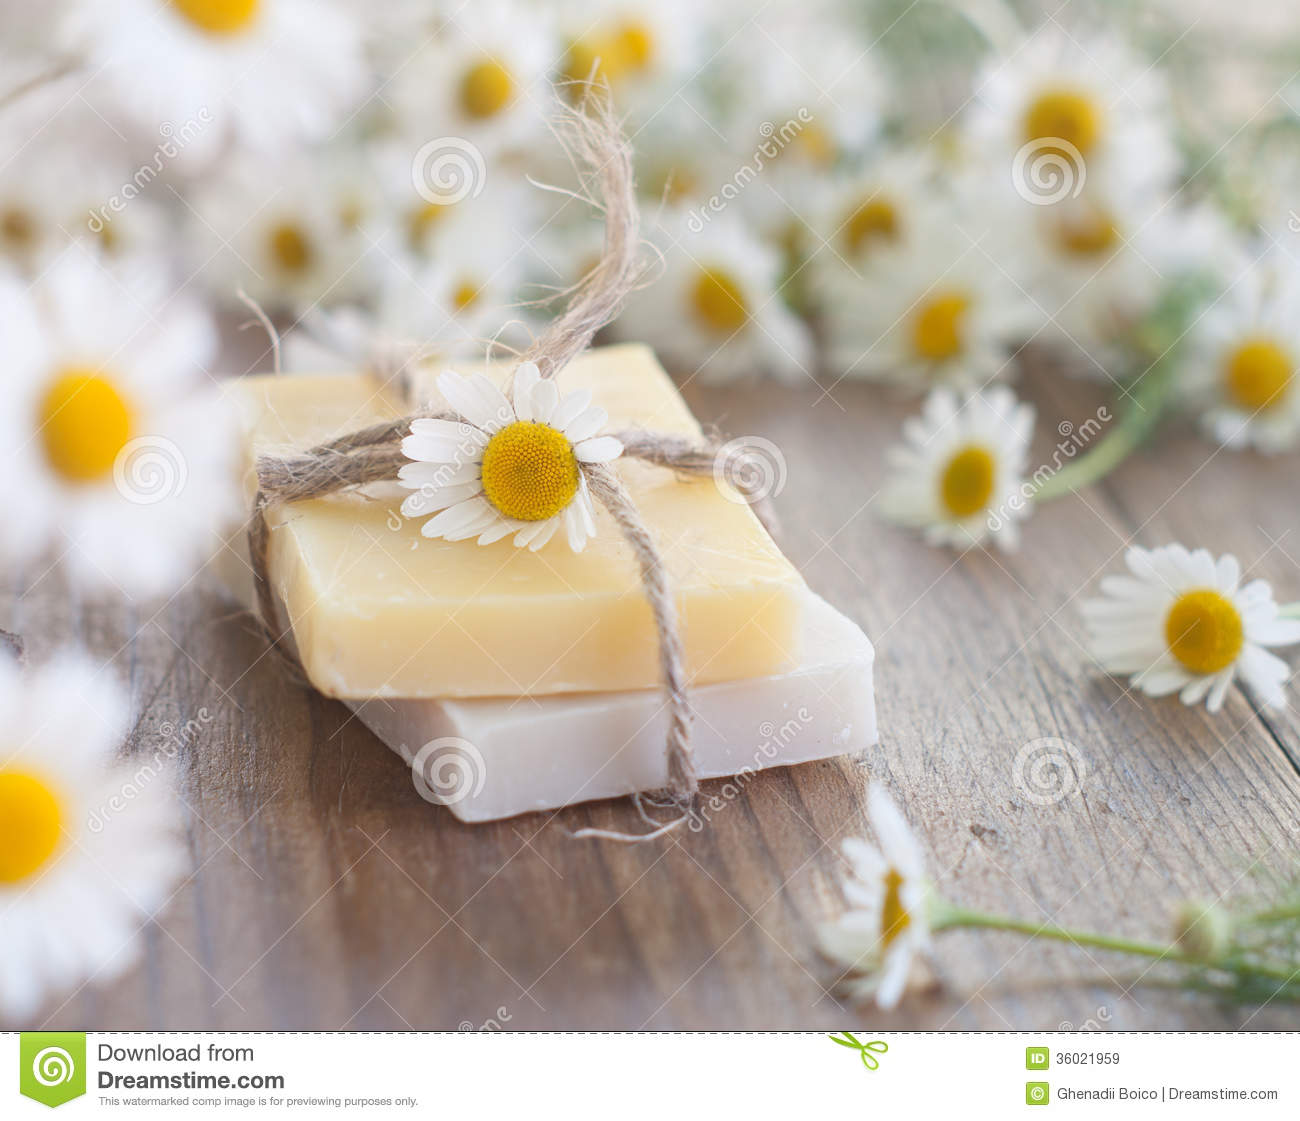 Handmade Soap Royalty Free Stock Images - Image: 36021959